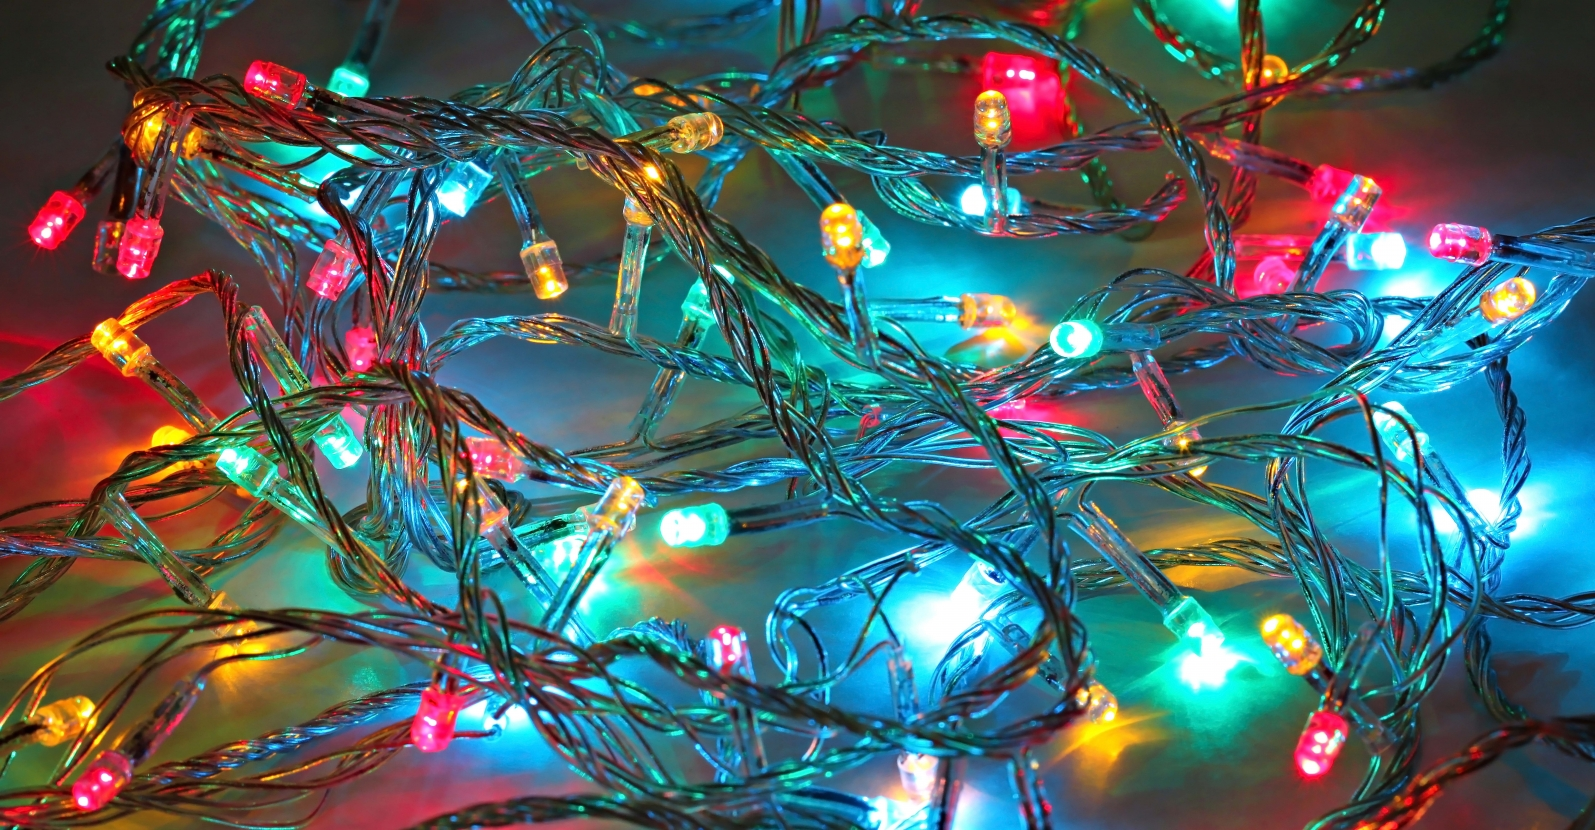 Modern Christmas Lights Offer so Much More